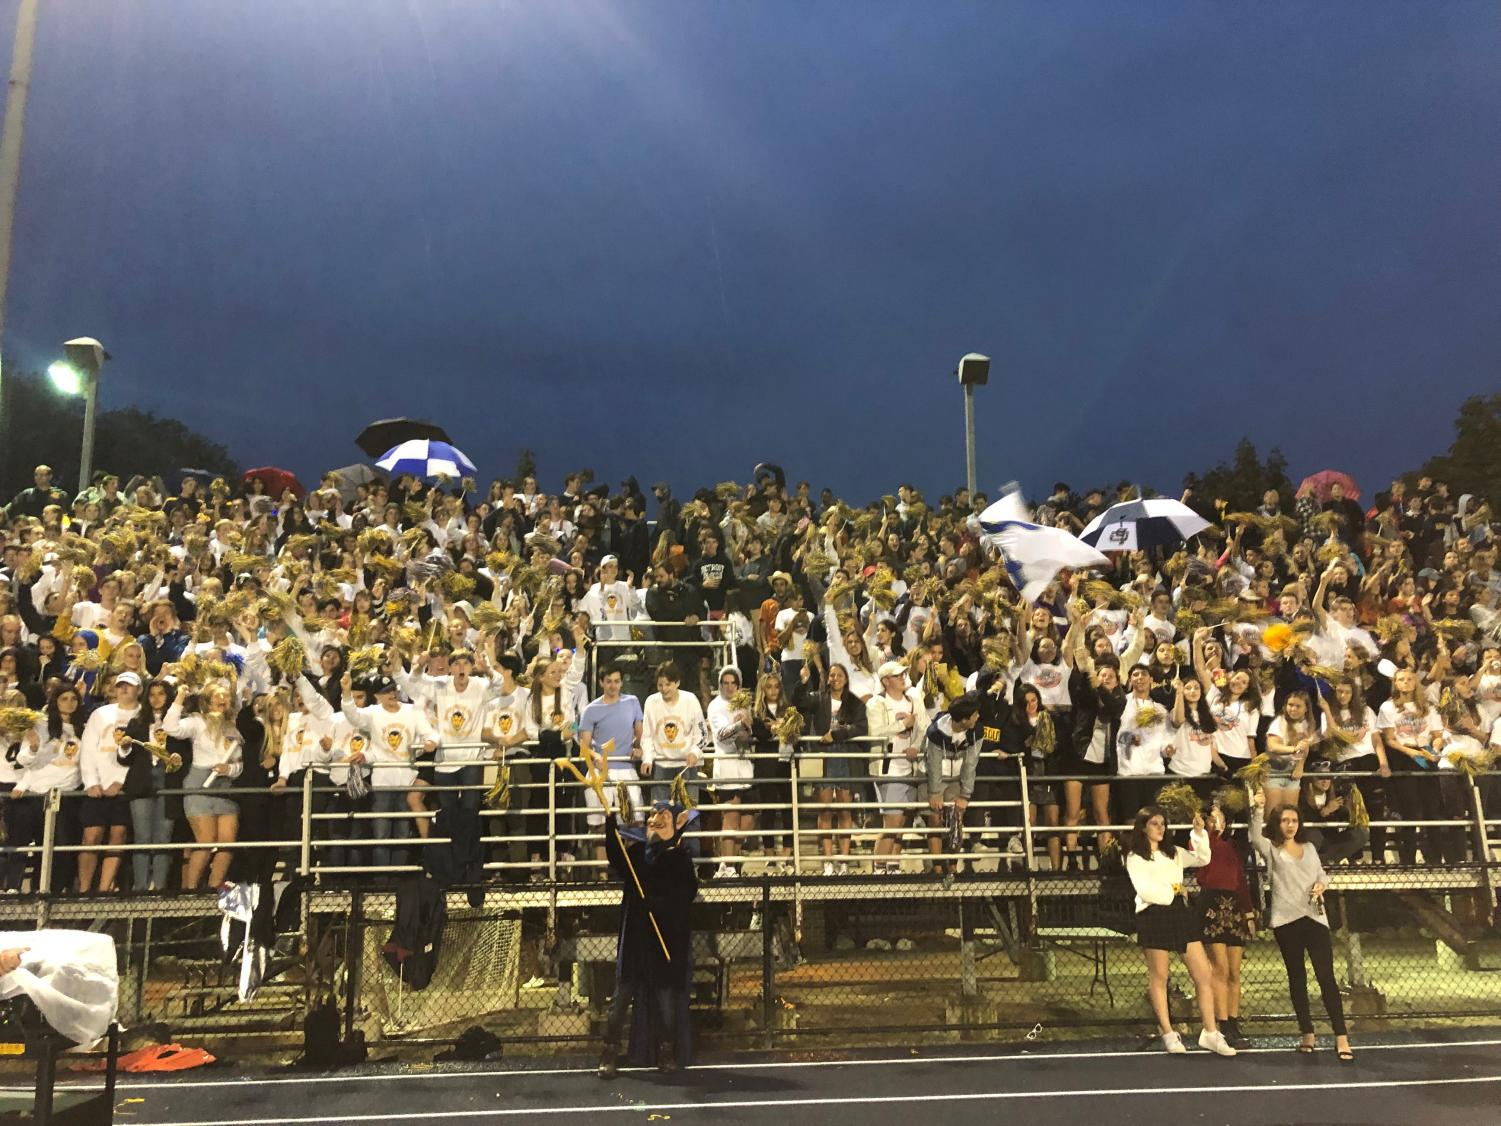 For the South homecoming game Devils Den expanded the student section, and the crowd was filled and wild.